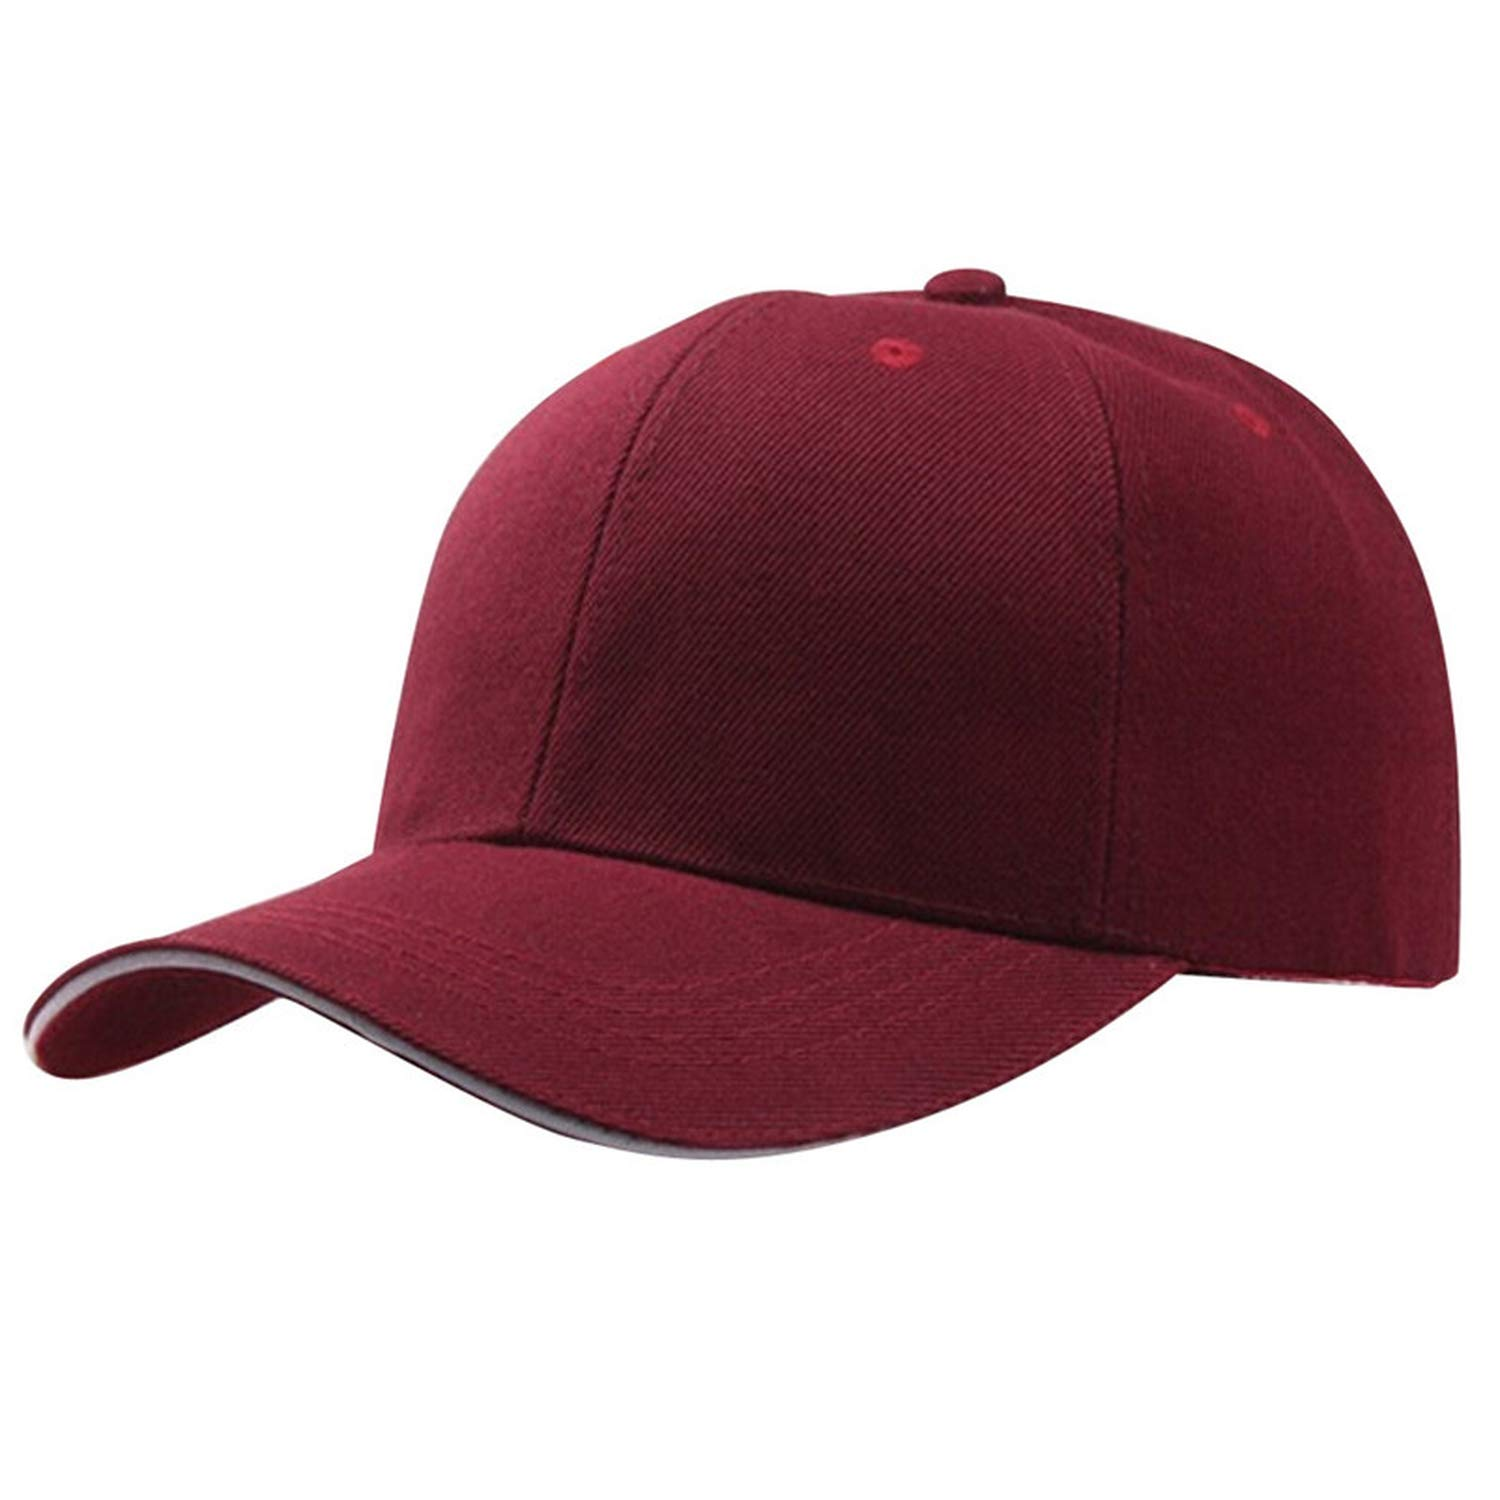 Women Men Baseball Cap Snapback Hip-Hop Adjustable Solid Casual Cotton+Polyester Hats Hot Fashion